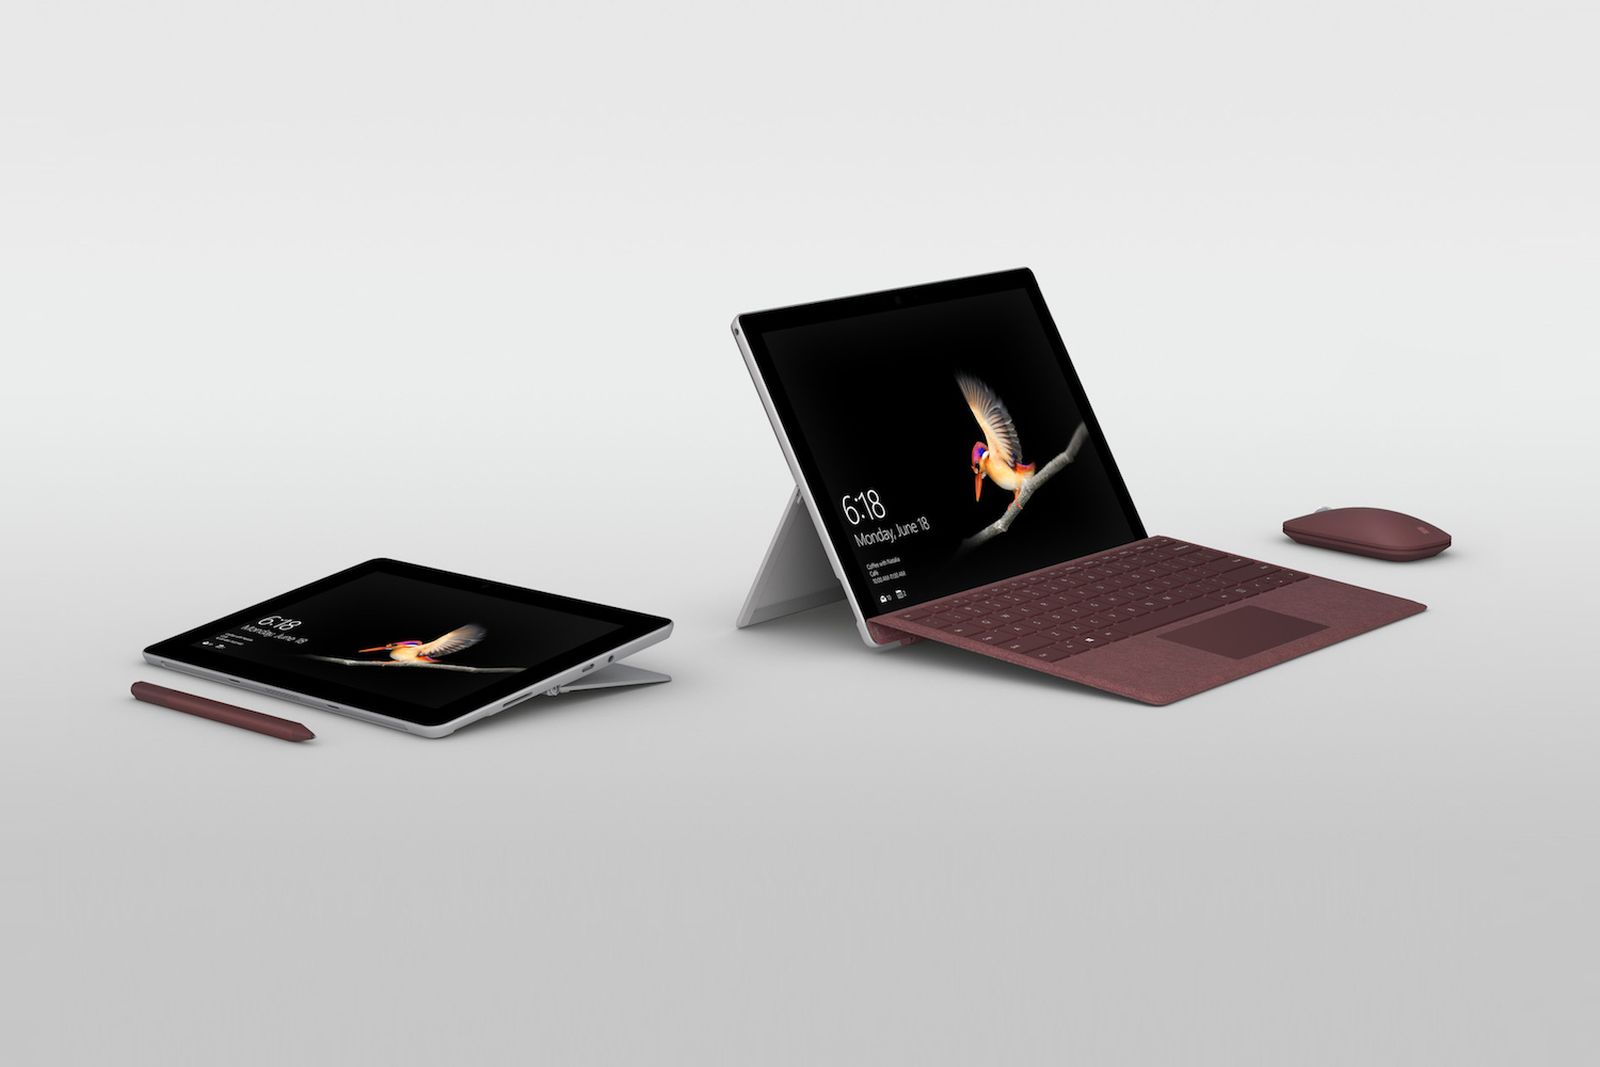 microsoft surface go release date price info